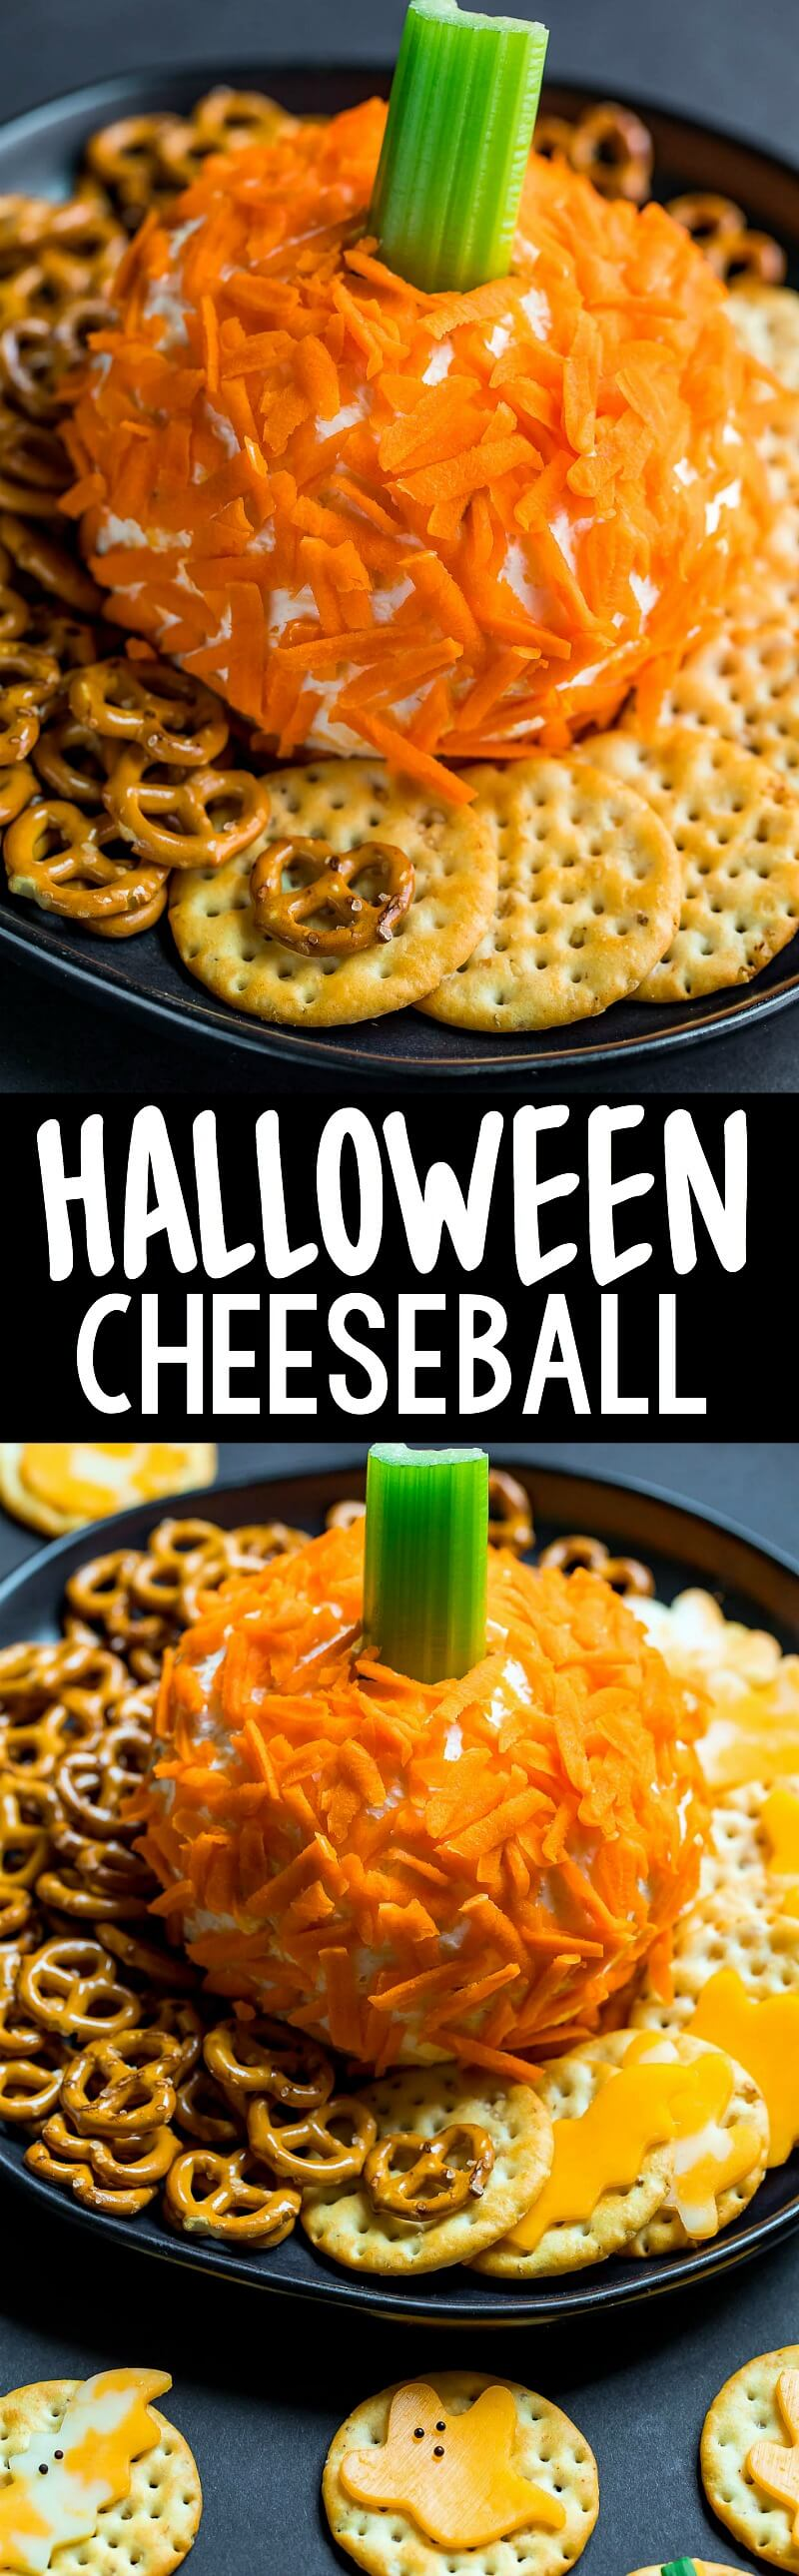 This Pumpkin Shaped Cheeseball and Halloween Cheese and Crackers are a fun and healthy way to treat your friends and family to an EPIC snack! Serve them up as an after school snack or as an easy party appetizer for all your Halloween party shenanigans! #halloween #party #partyfood #cheese #cheeseball #pumpkin #appetizer #snack